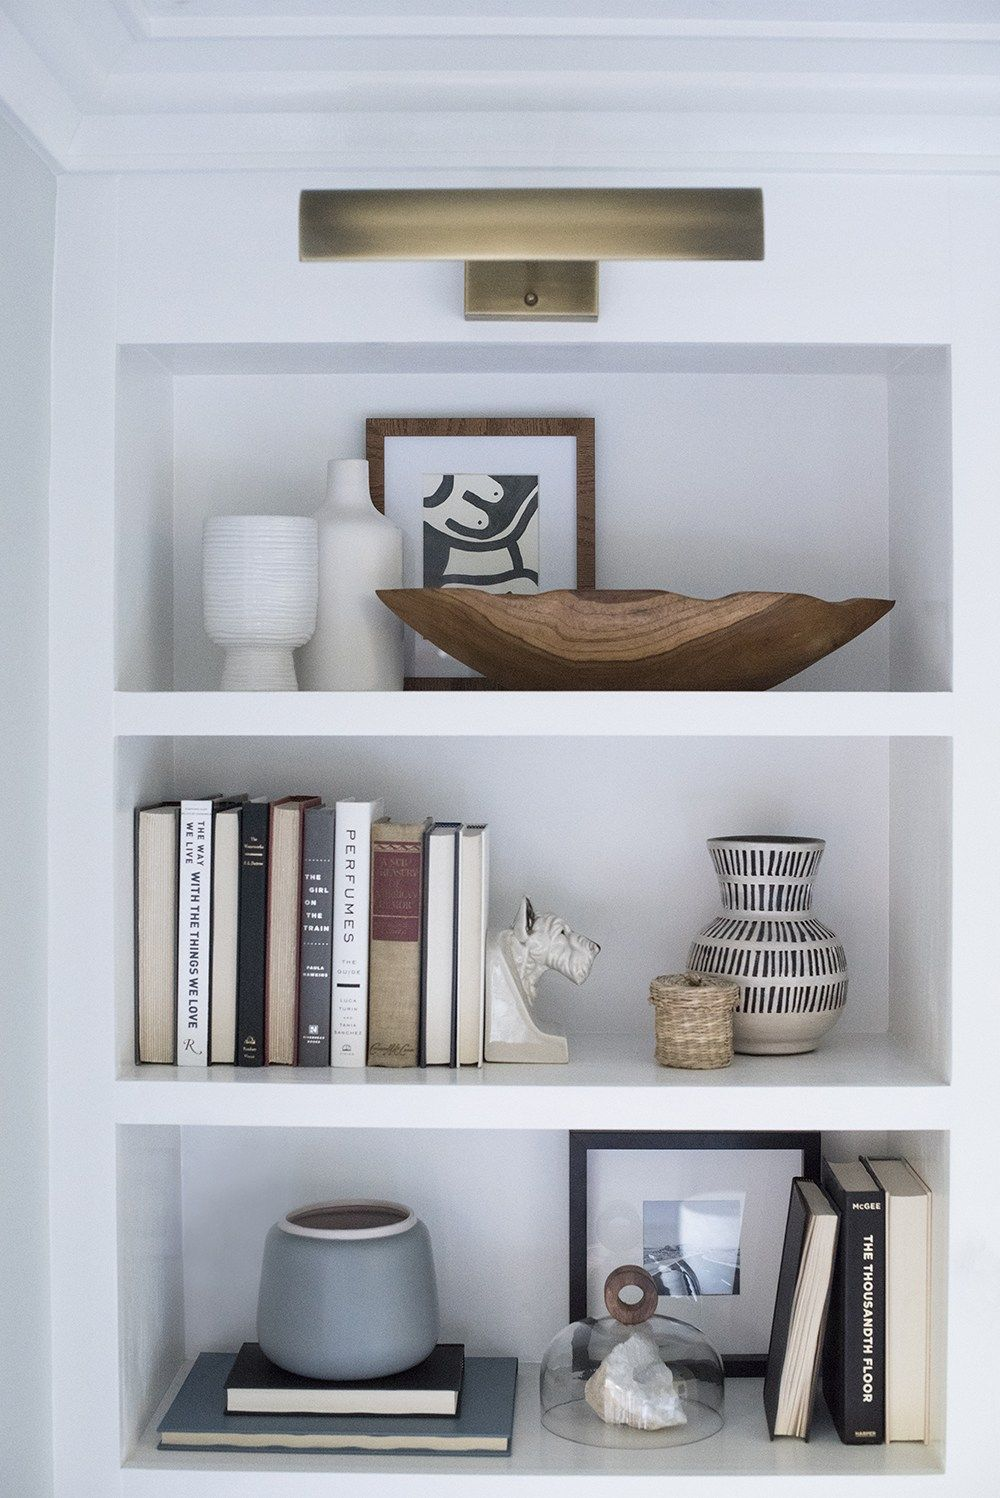 Best of Etsy : Bookends and Shelf Styling - Room for Tuesday